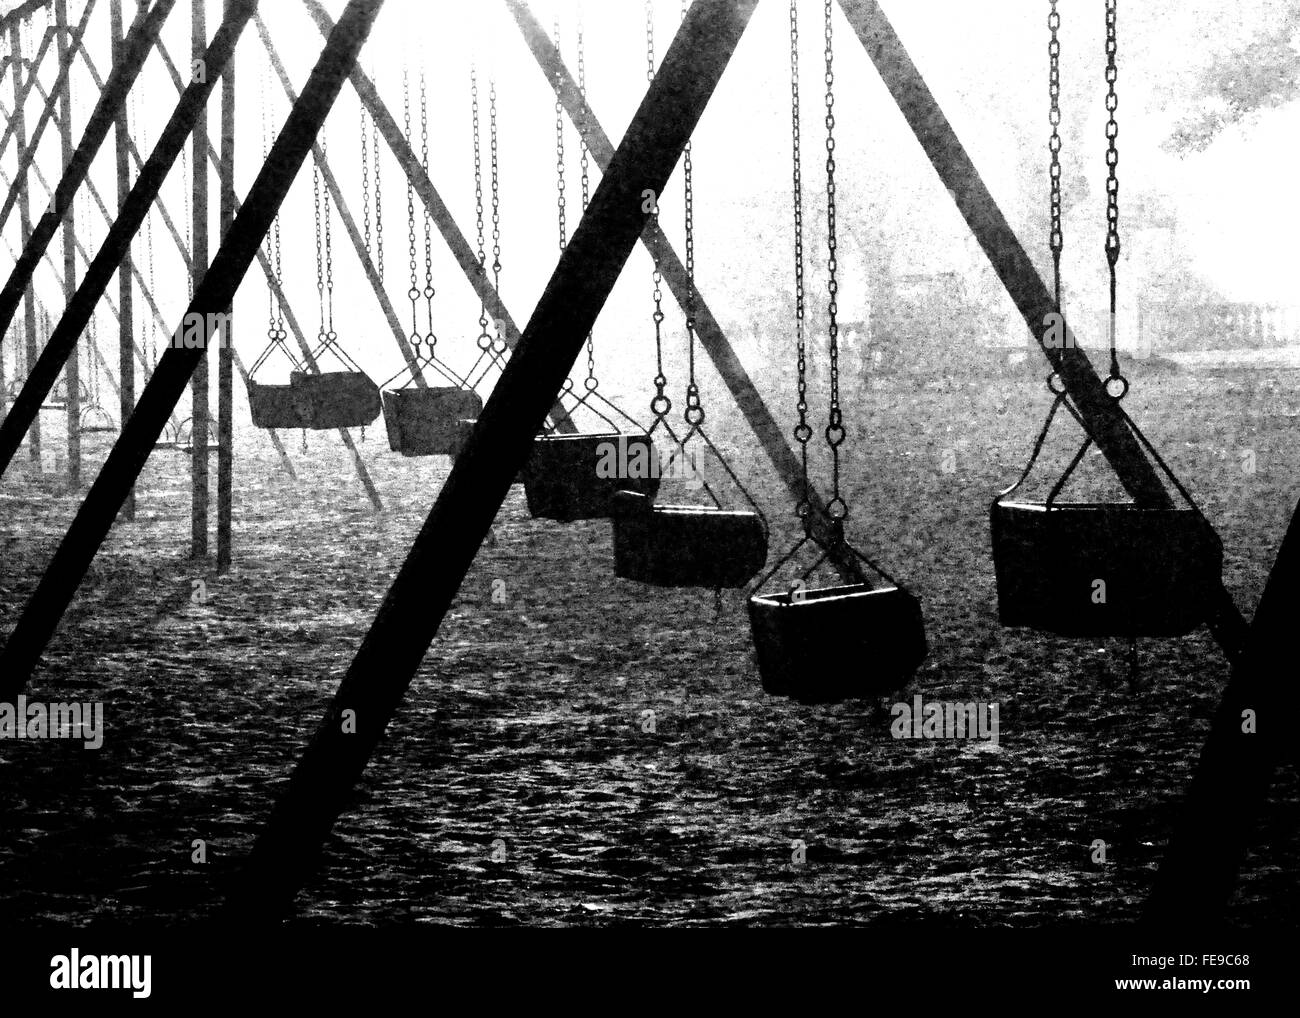 Argentine park taken in a foggy day. Swing in a dark day. - Stock Image